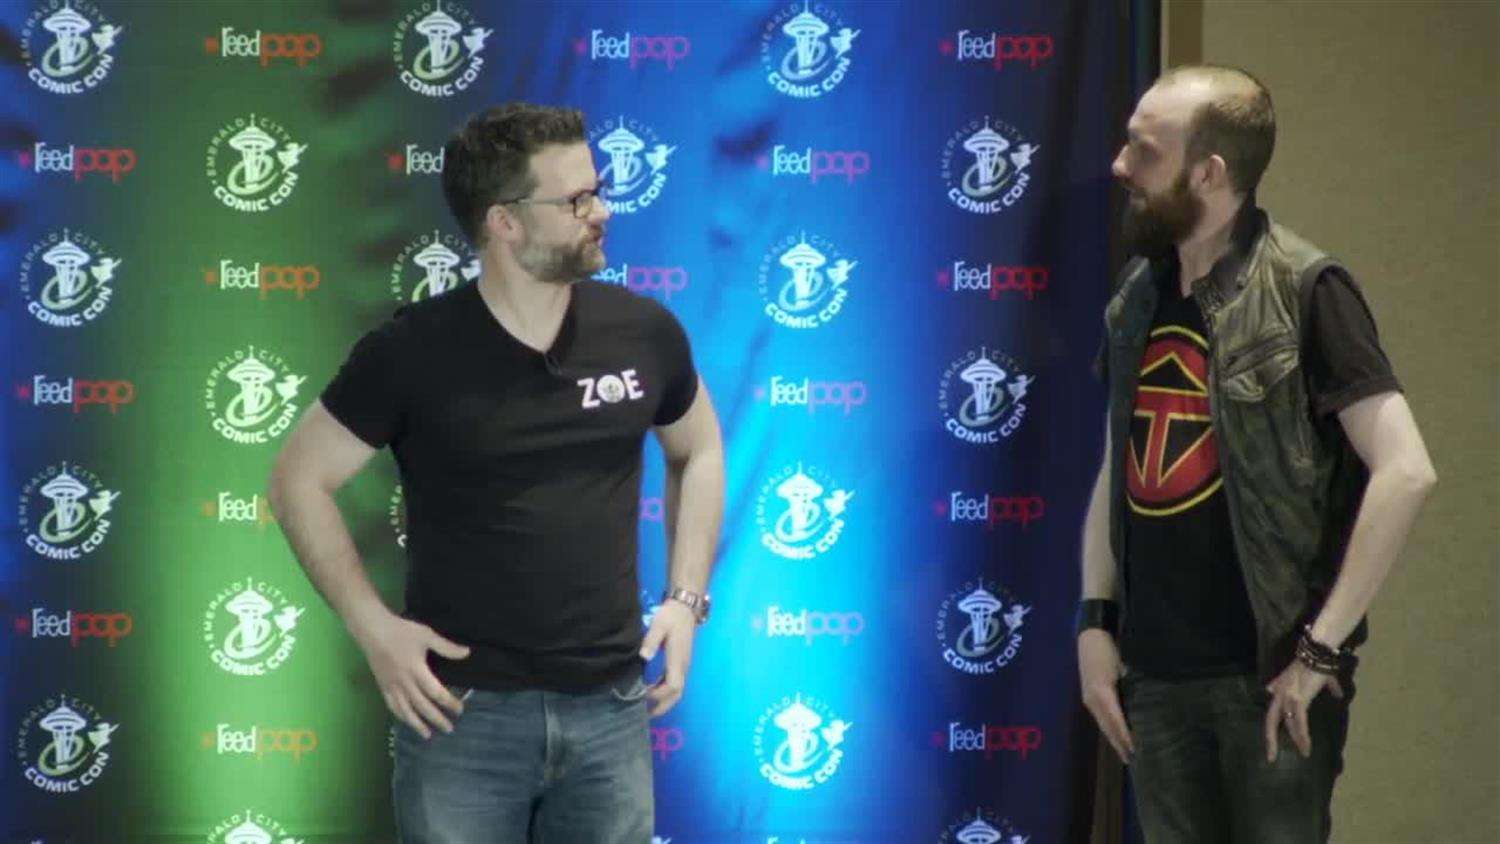 Gamers Live: Capes Optional (ECCC 2019)